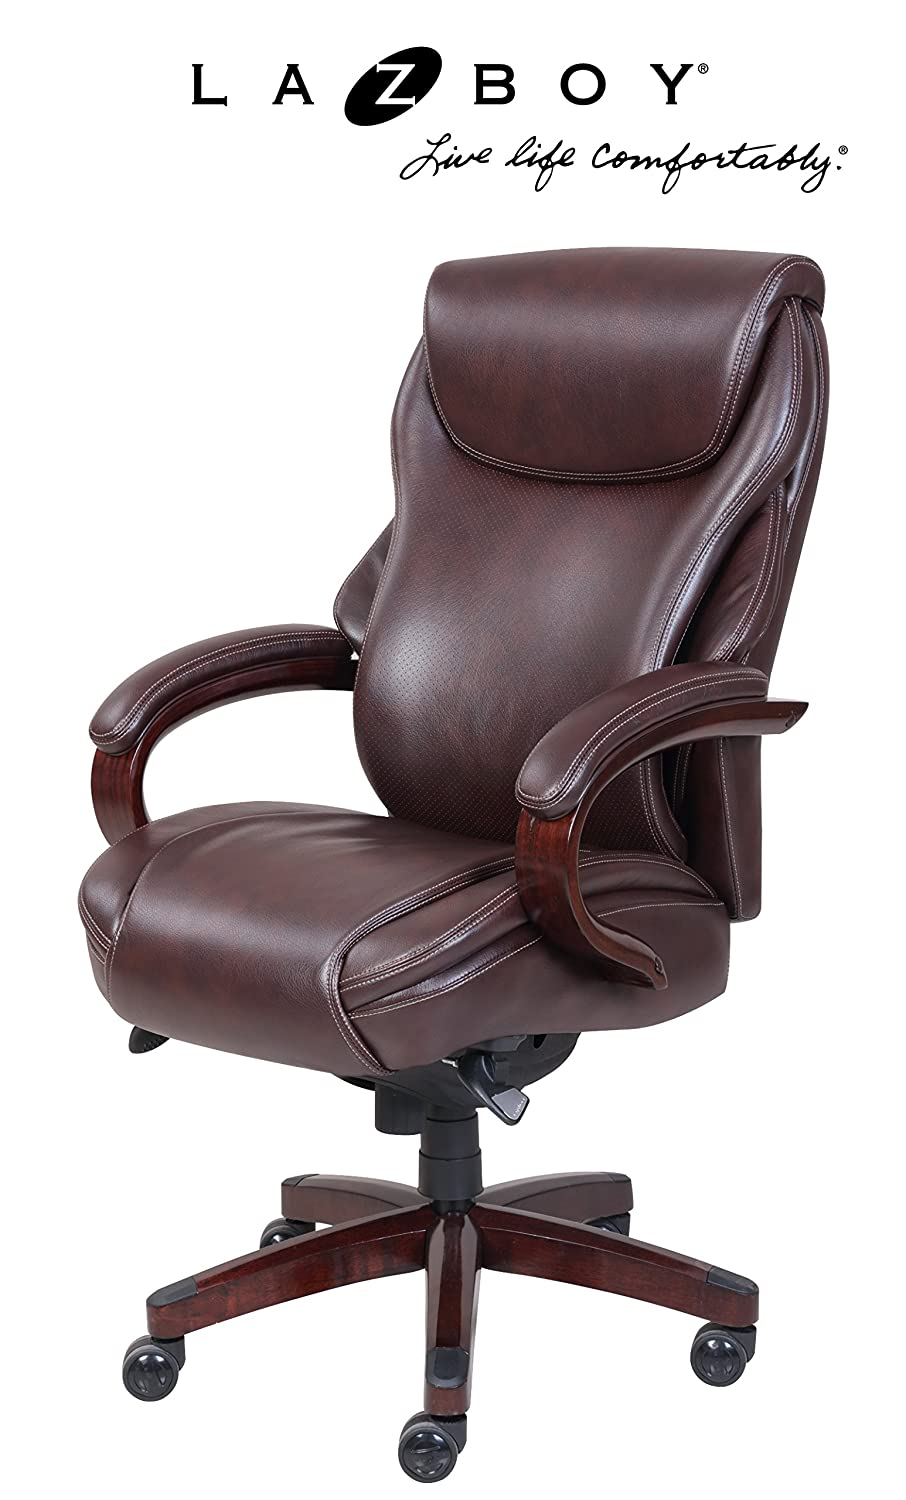 gm leather computer executive office ergonomic itm pu desk high chair chairs task study back